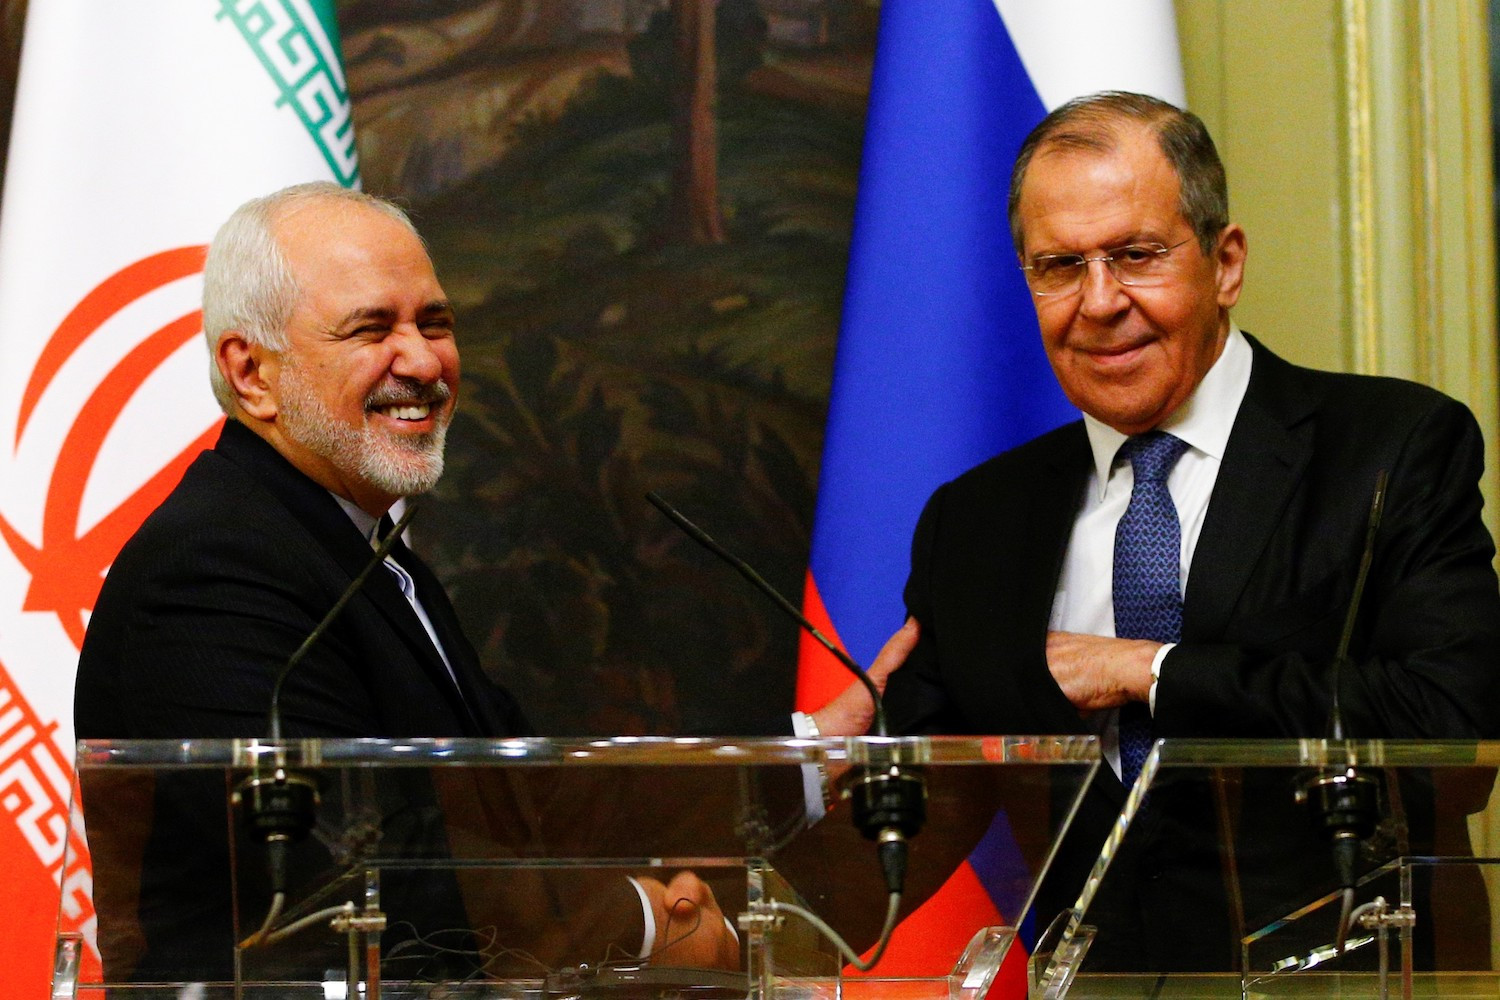 Iranian Minister of Foreign Affairs Mohammad Javad Zarif and Russian Foreign Minister Sergei Lavrov meet in Moscow on May 8. Sefa Karacan/Anadolu Agency/Getty Images